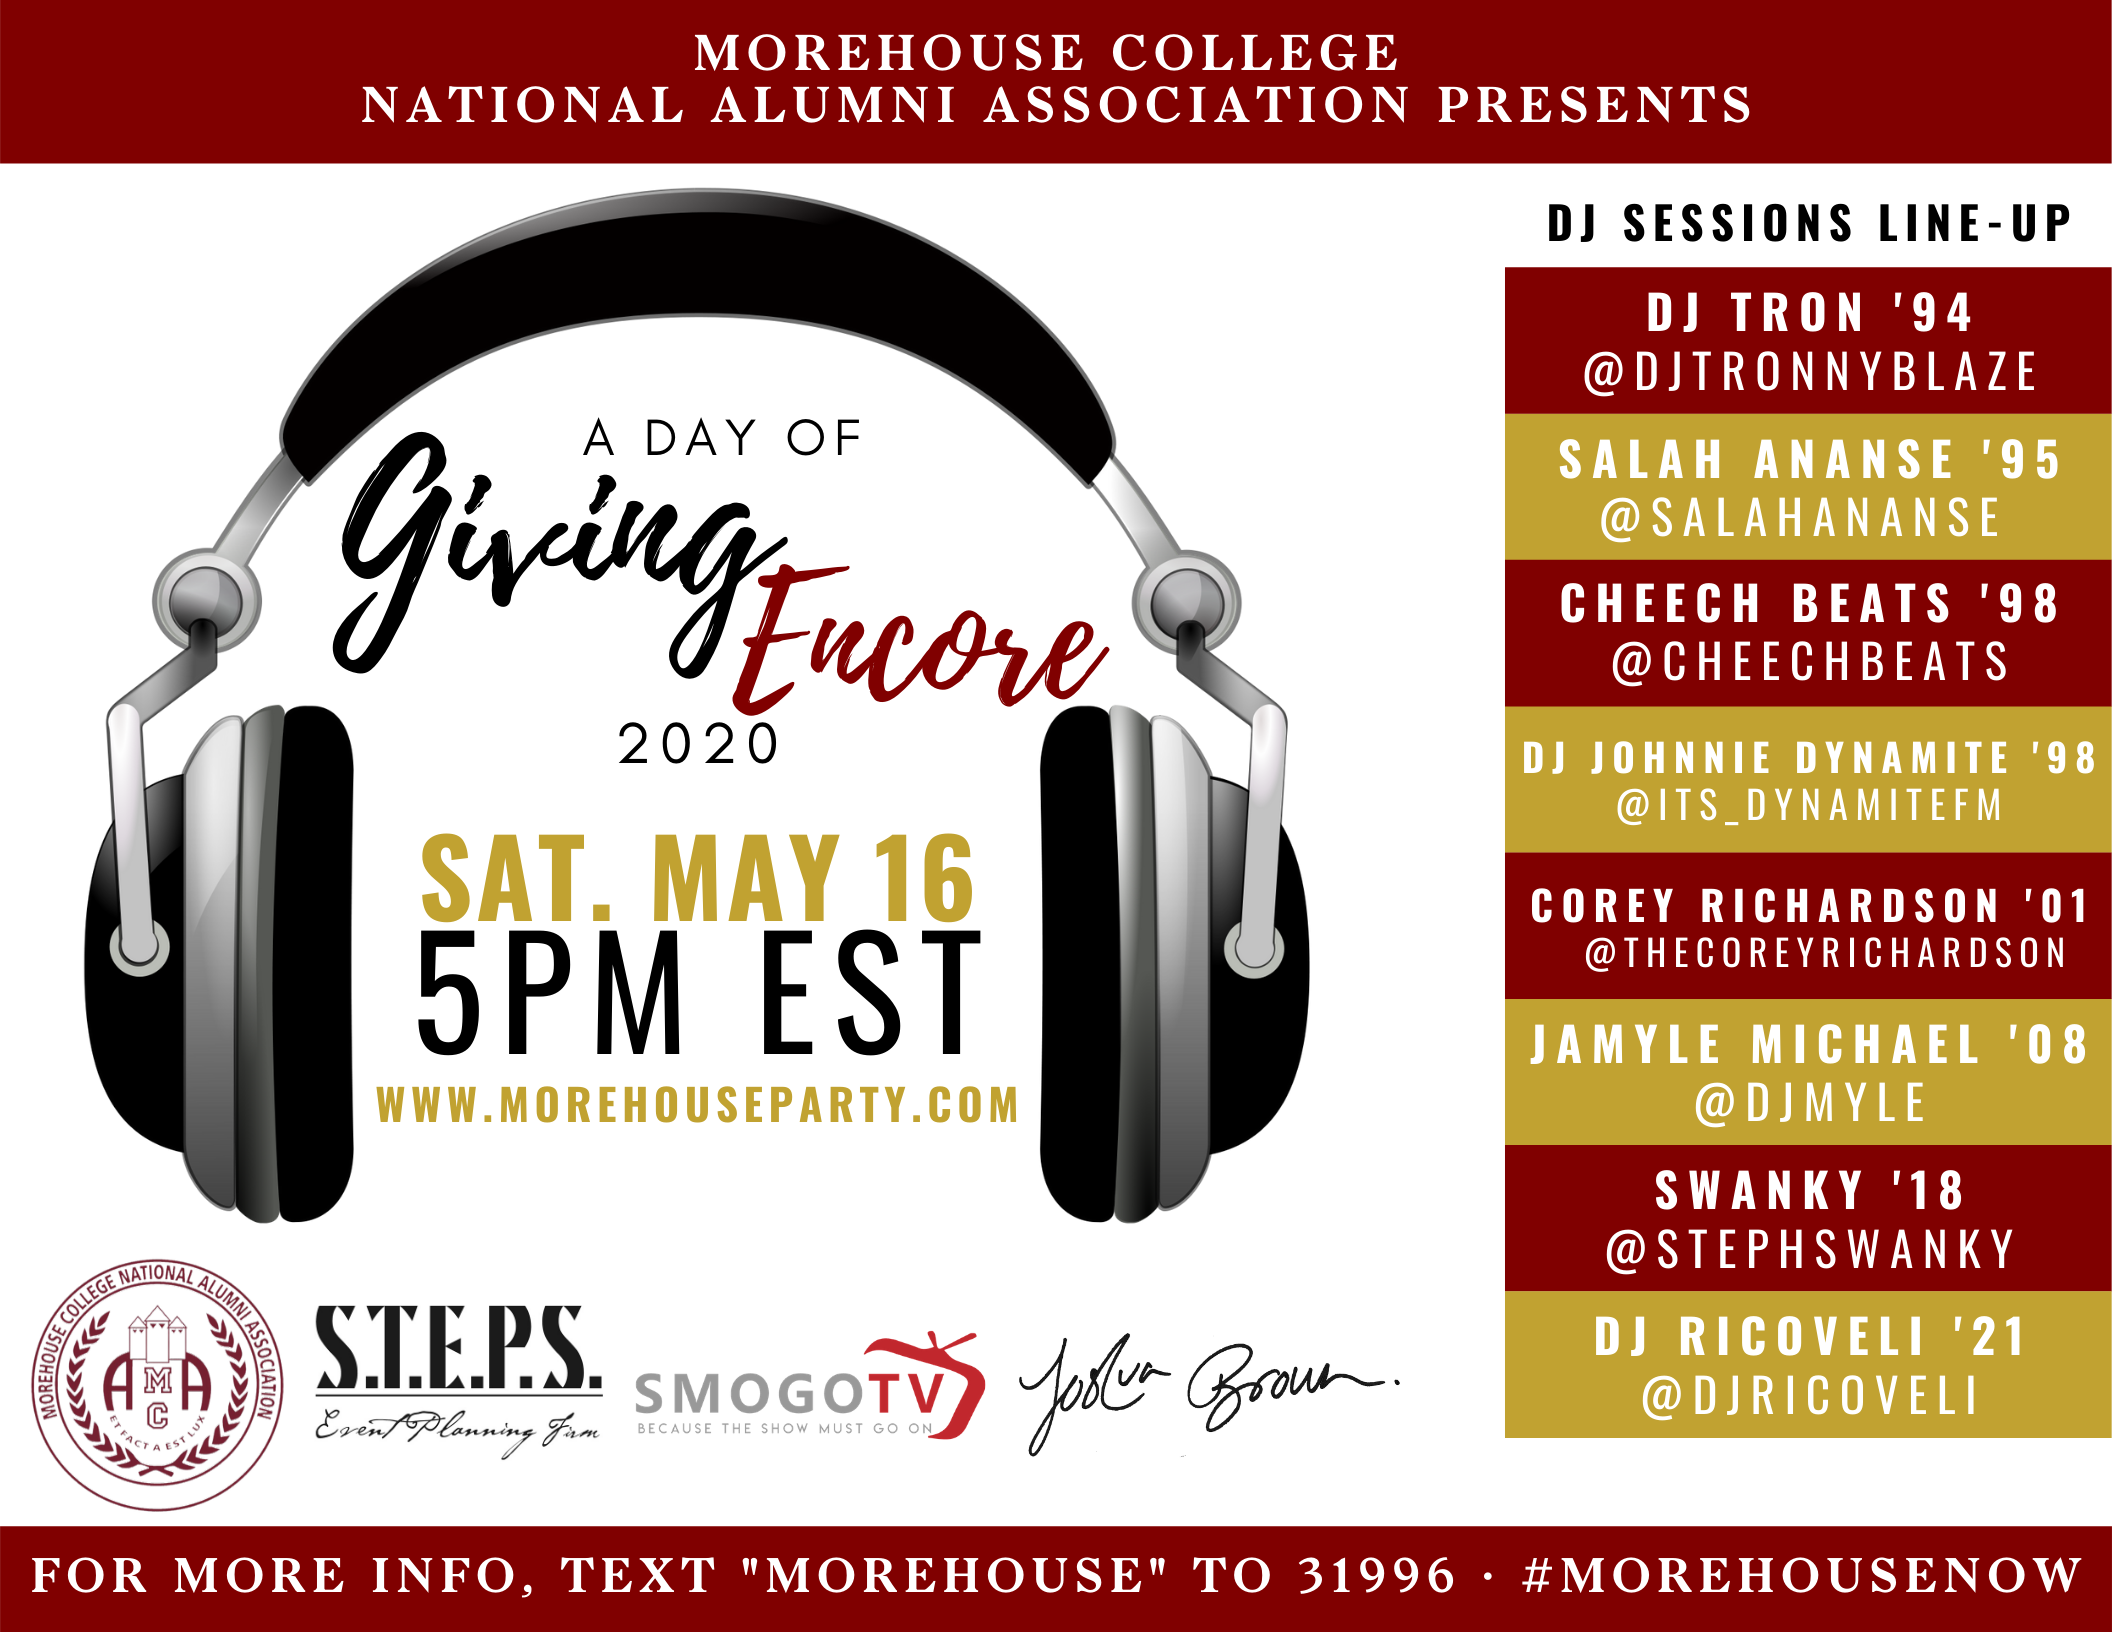 Join us Saturday May 16th at 5pm EST for the MoreHOUSEParty!